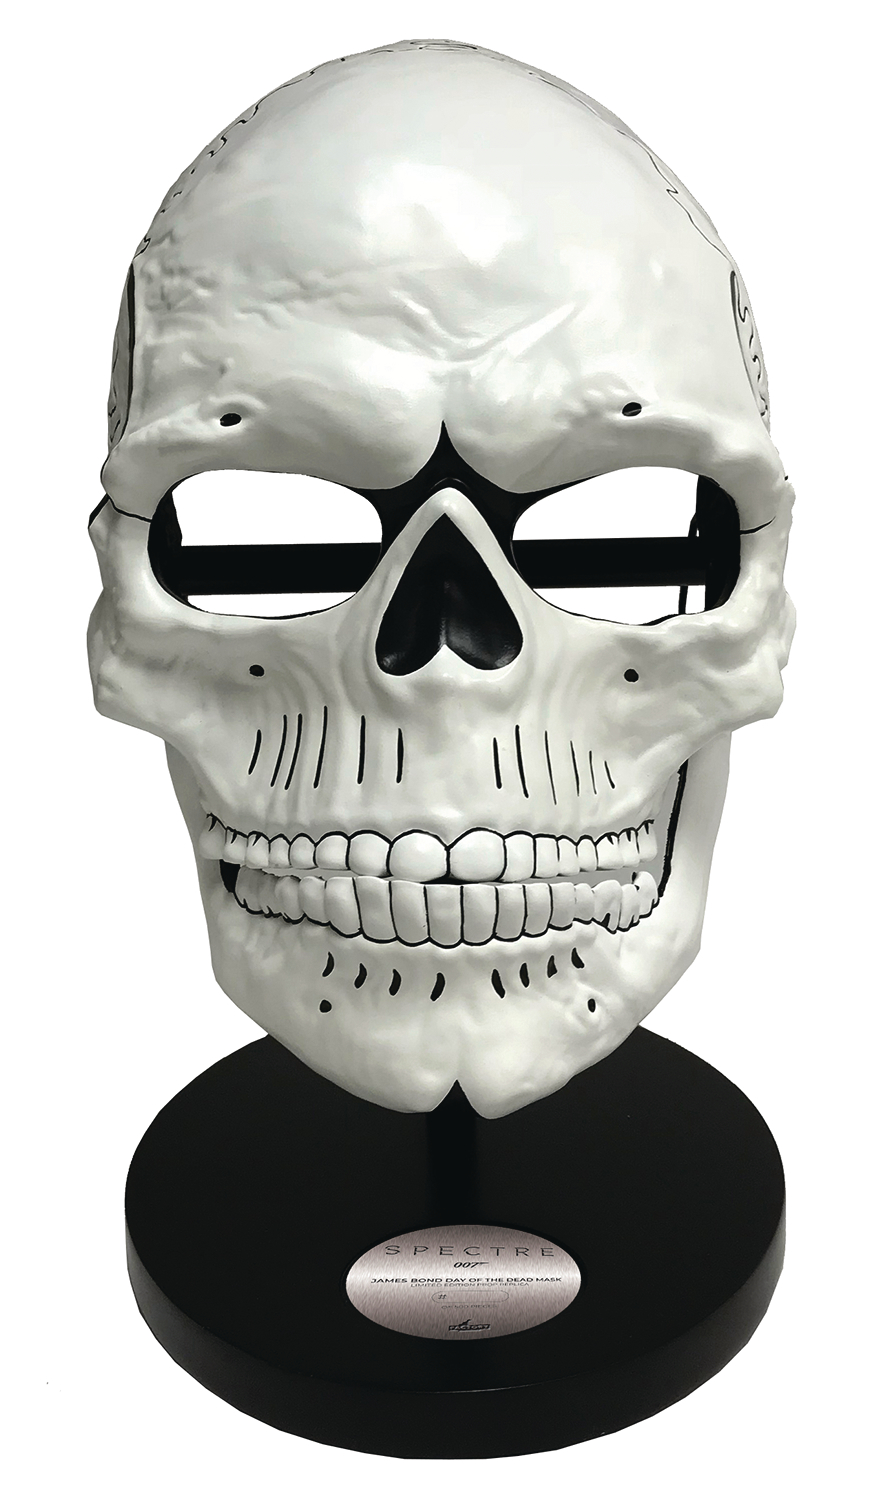 SPECTRE DAY OF THE DEAD MASK LIMITED EDITION PROP REPLICA (C